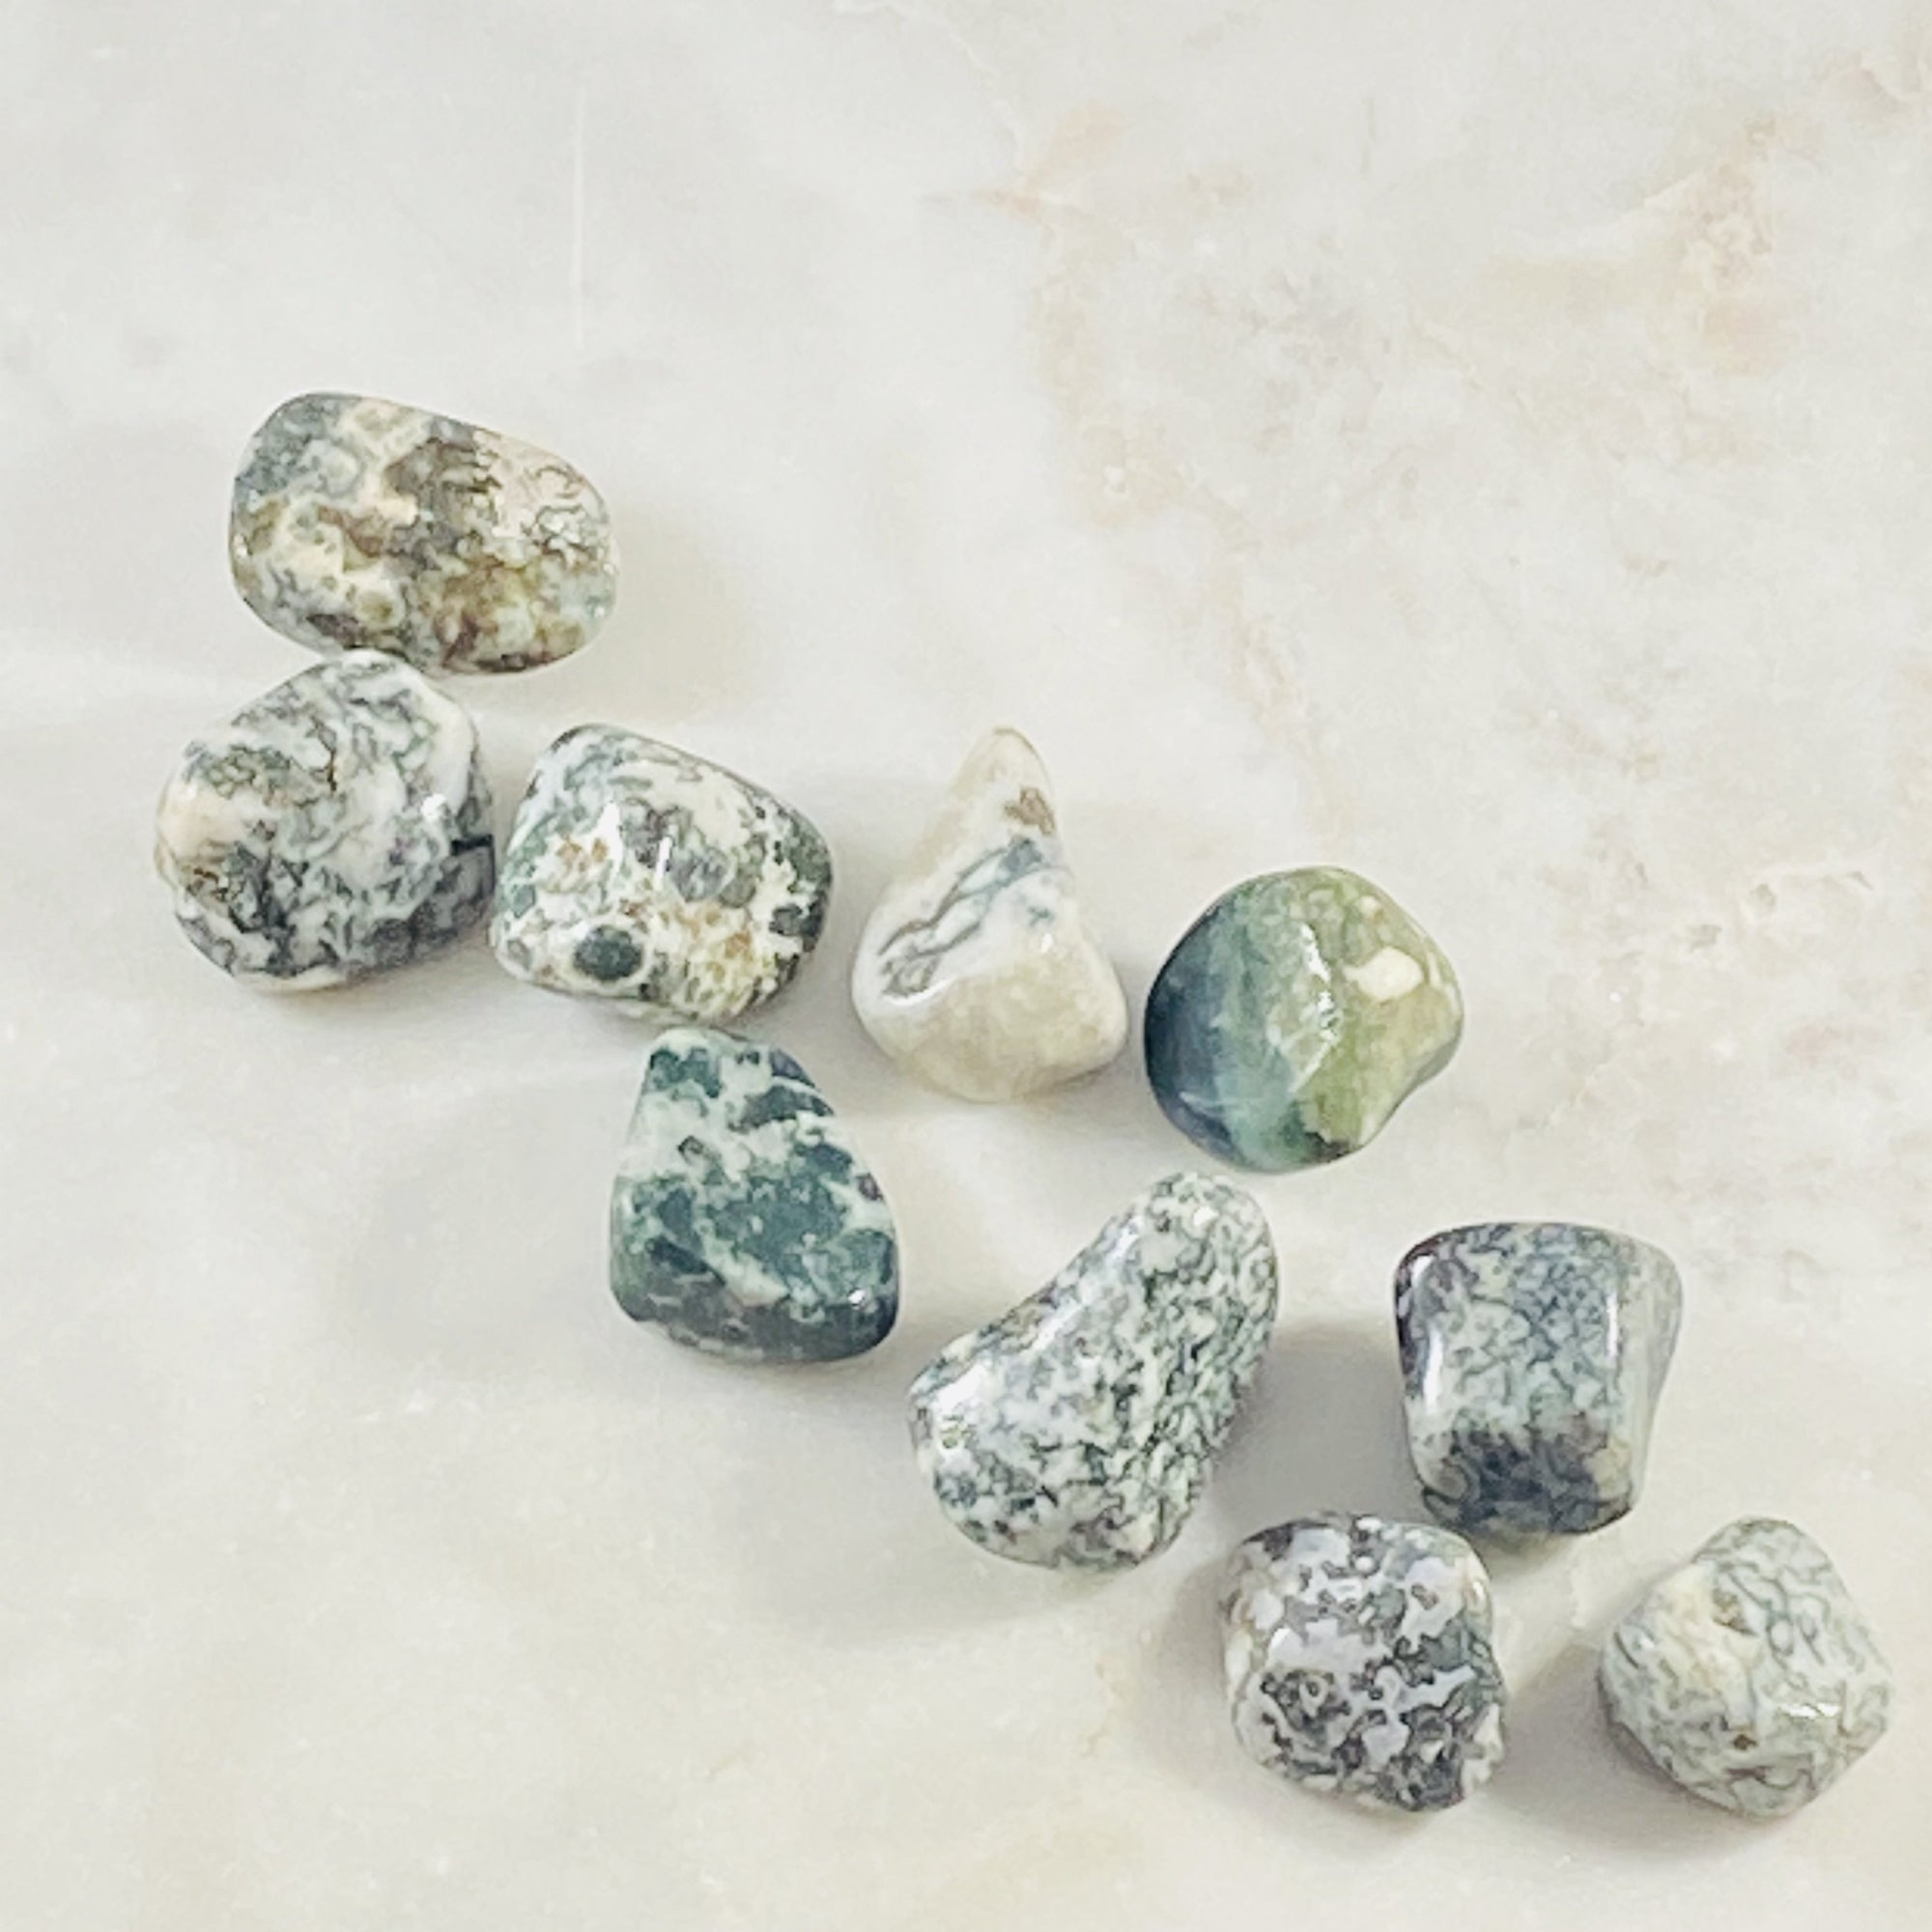 Tree agate tumbled stones Sarah Belle